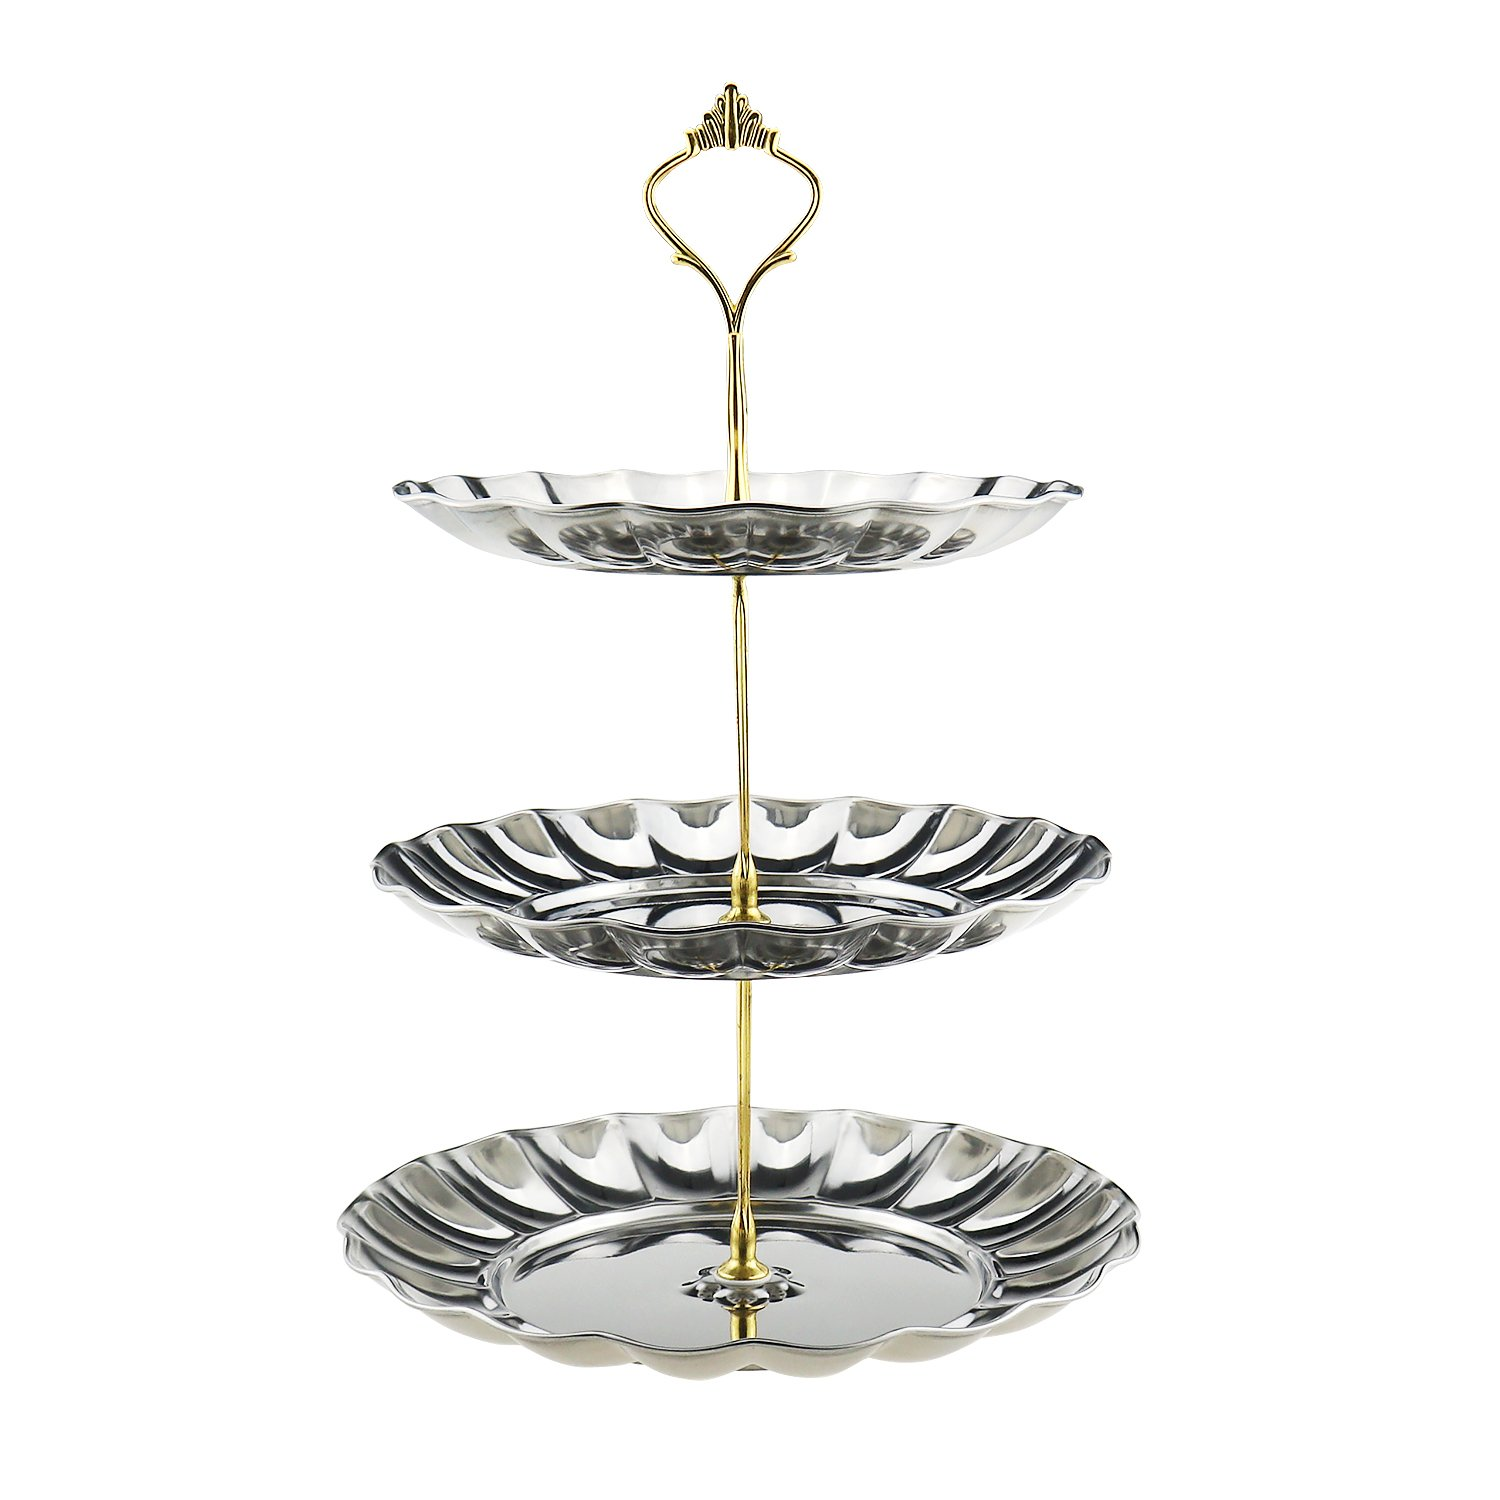 Fruit Plates,SamYoung 3-Tier Stainless Steel Cake Wedding Stand Fruits Desserts Candy Cheese Tableware Plates Display for Wedding Home Gold Party Celebration Gold color. (Gold) by SamYoung COMINHKPR107076